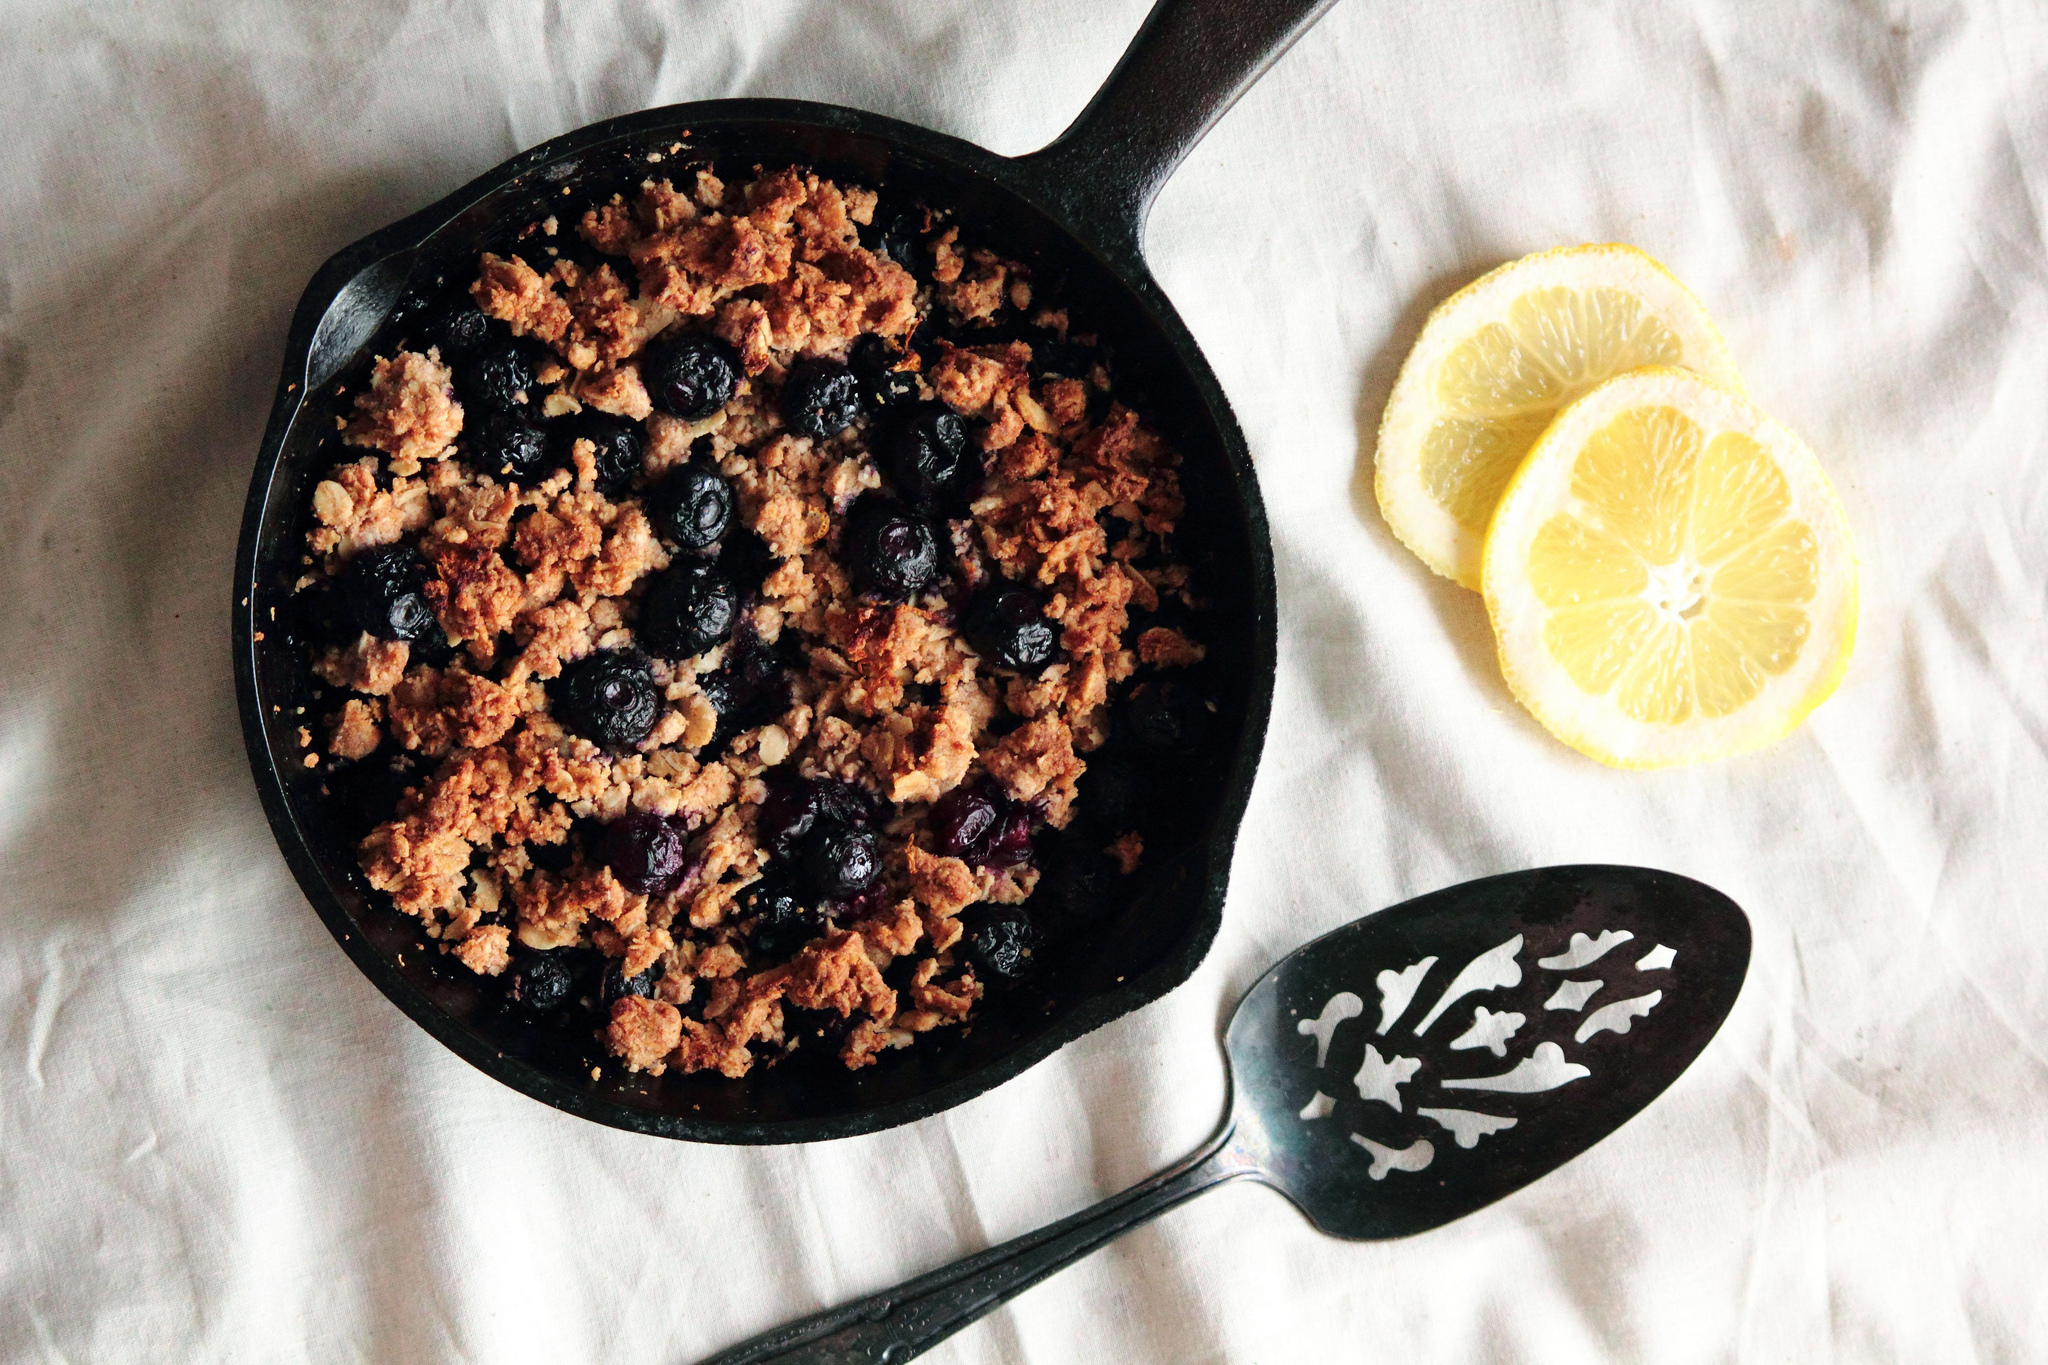 Blueberry Lemon Crumble